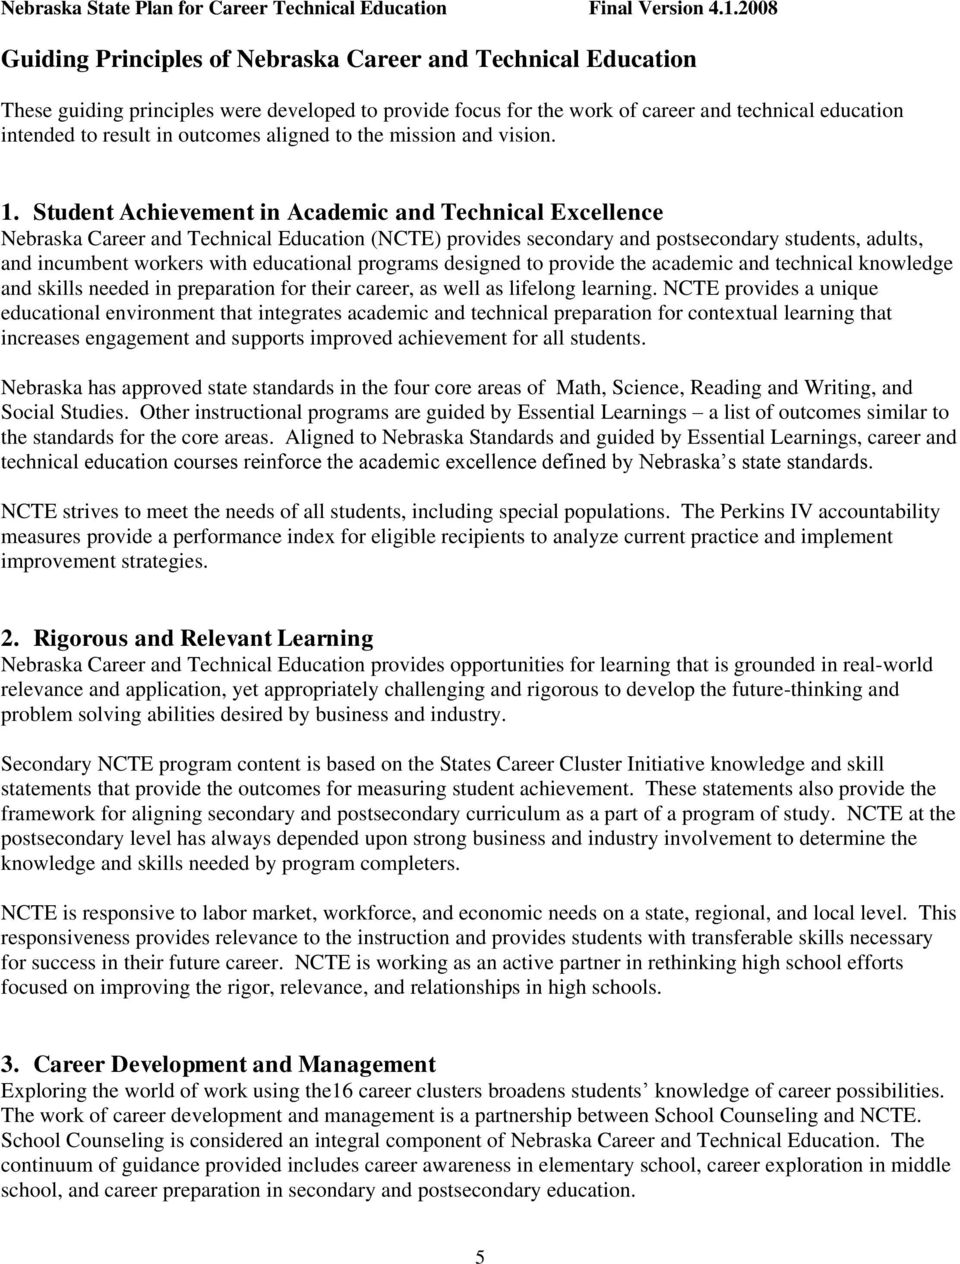 Student Achievement in Academic and Technical Excellence Nebraska Career and Technical Education (NCTE) provides secondary and postsecondary students, adults, and incumbent workers with educational